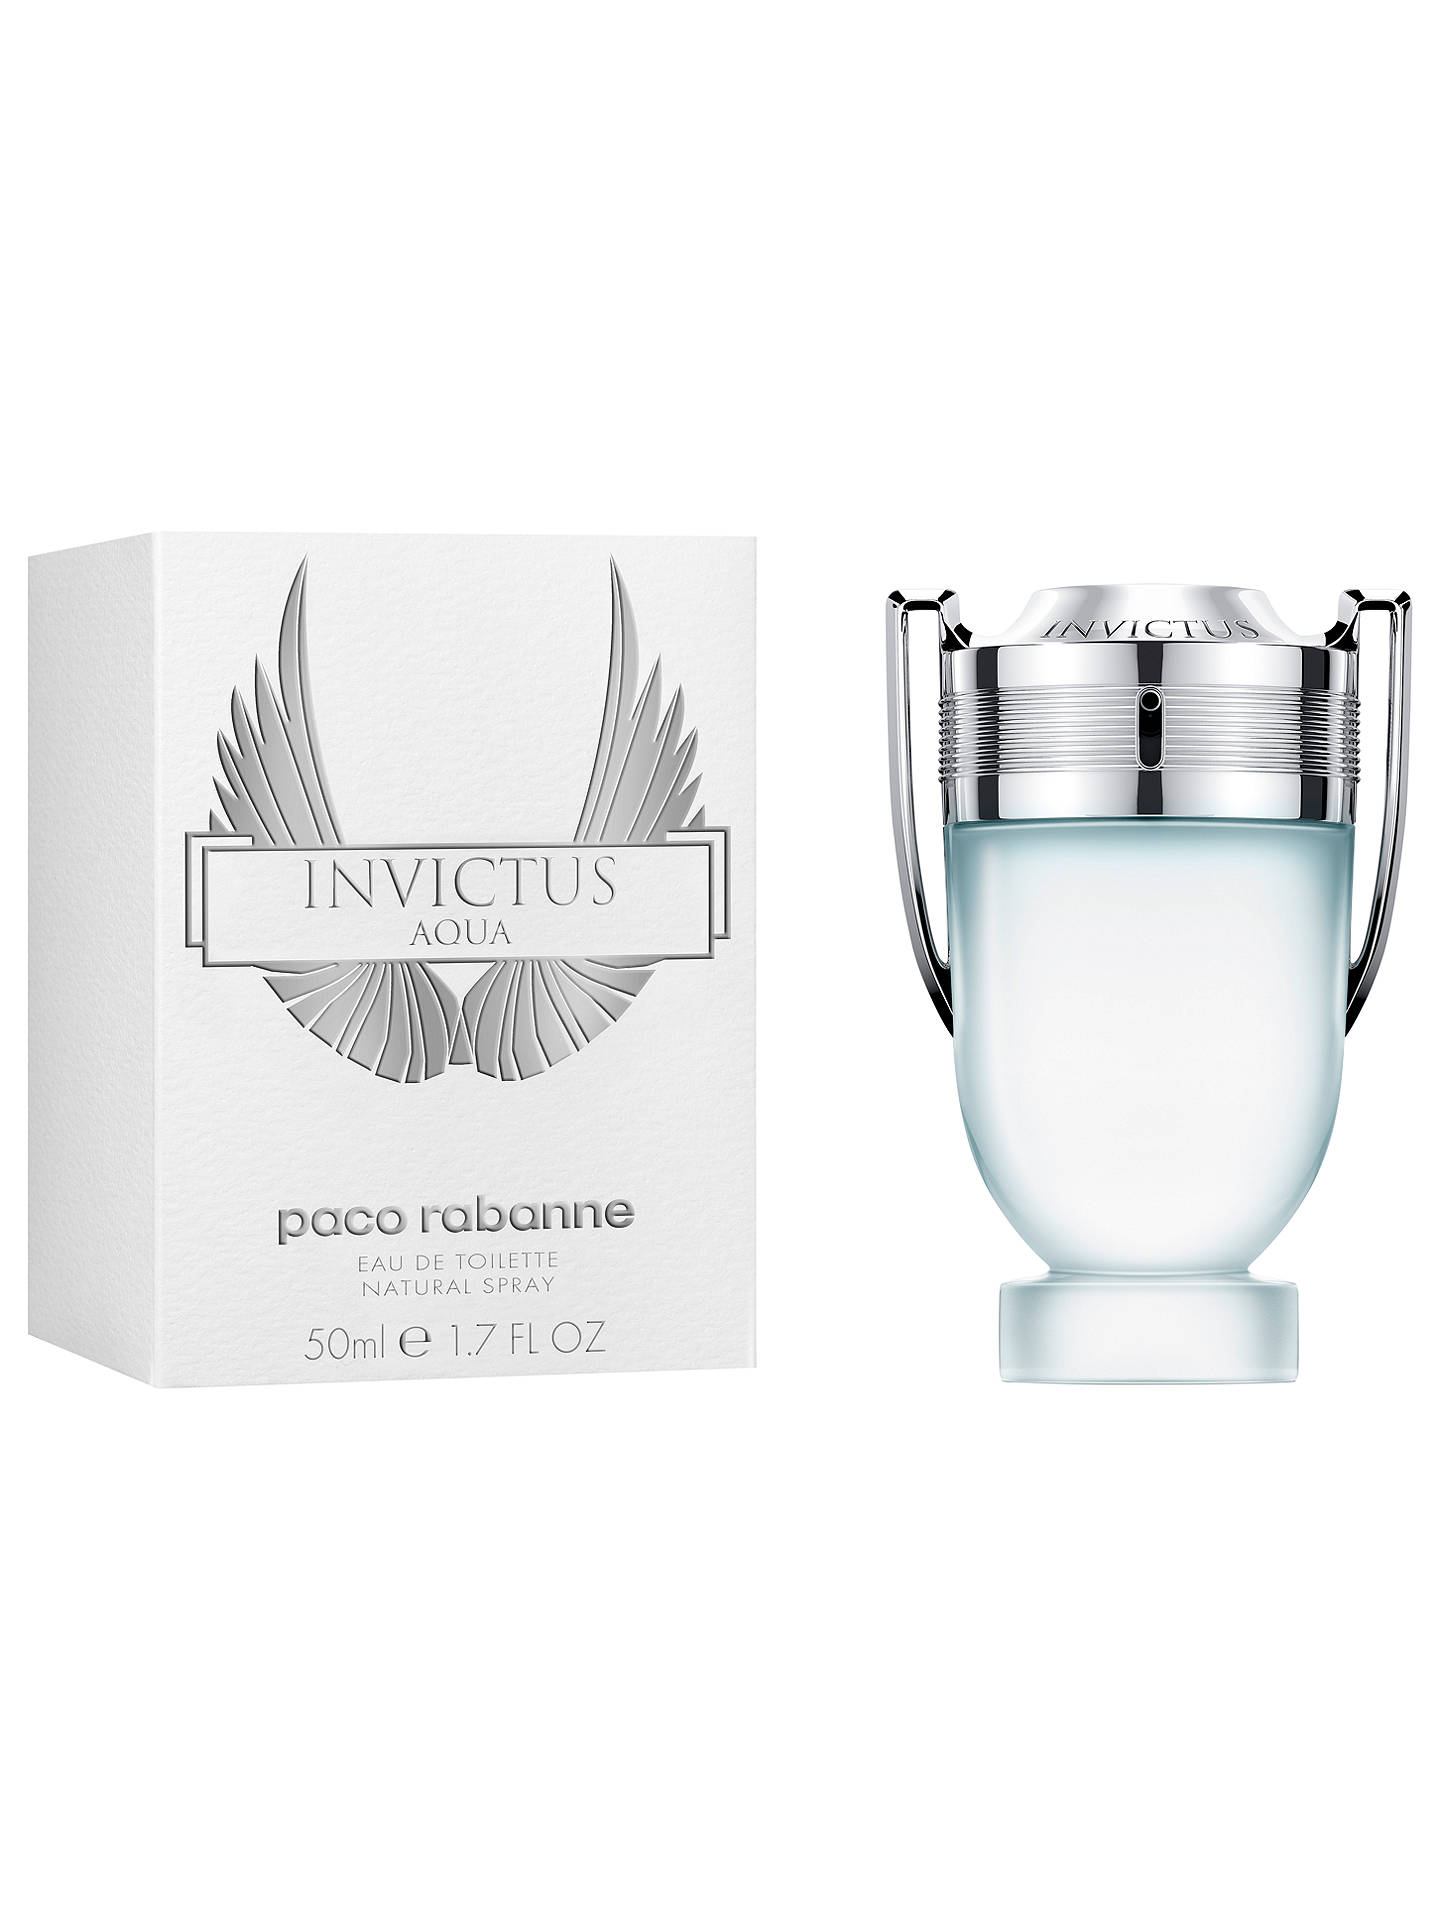 BuyPaco Rabanne Invictus Aqua Eau de Toilette, 50ml Online at johnlewis.com